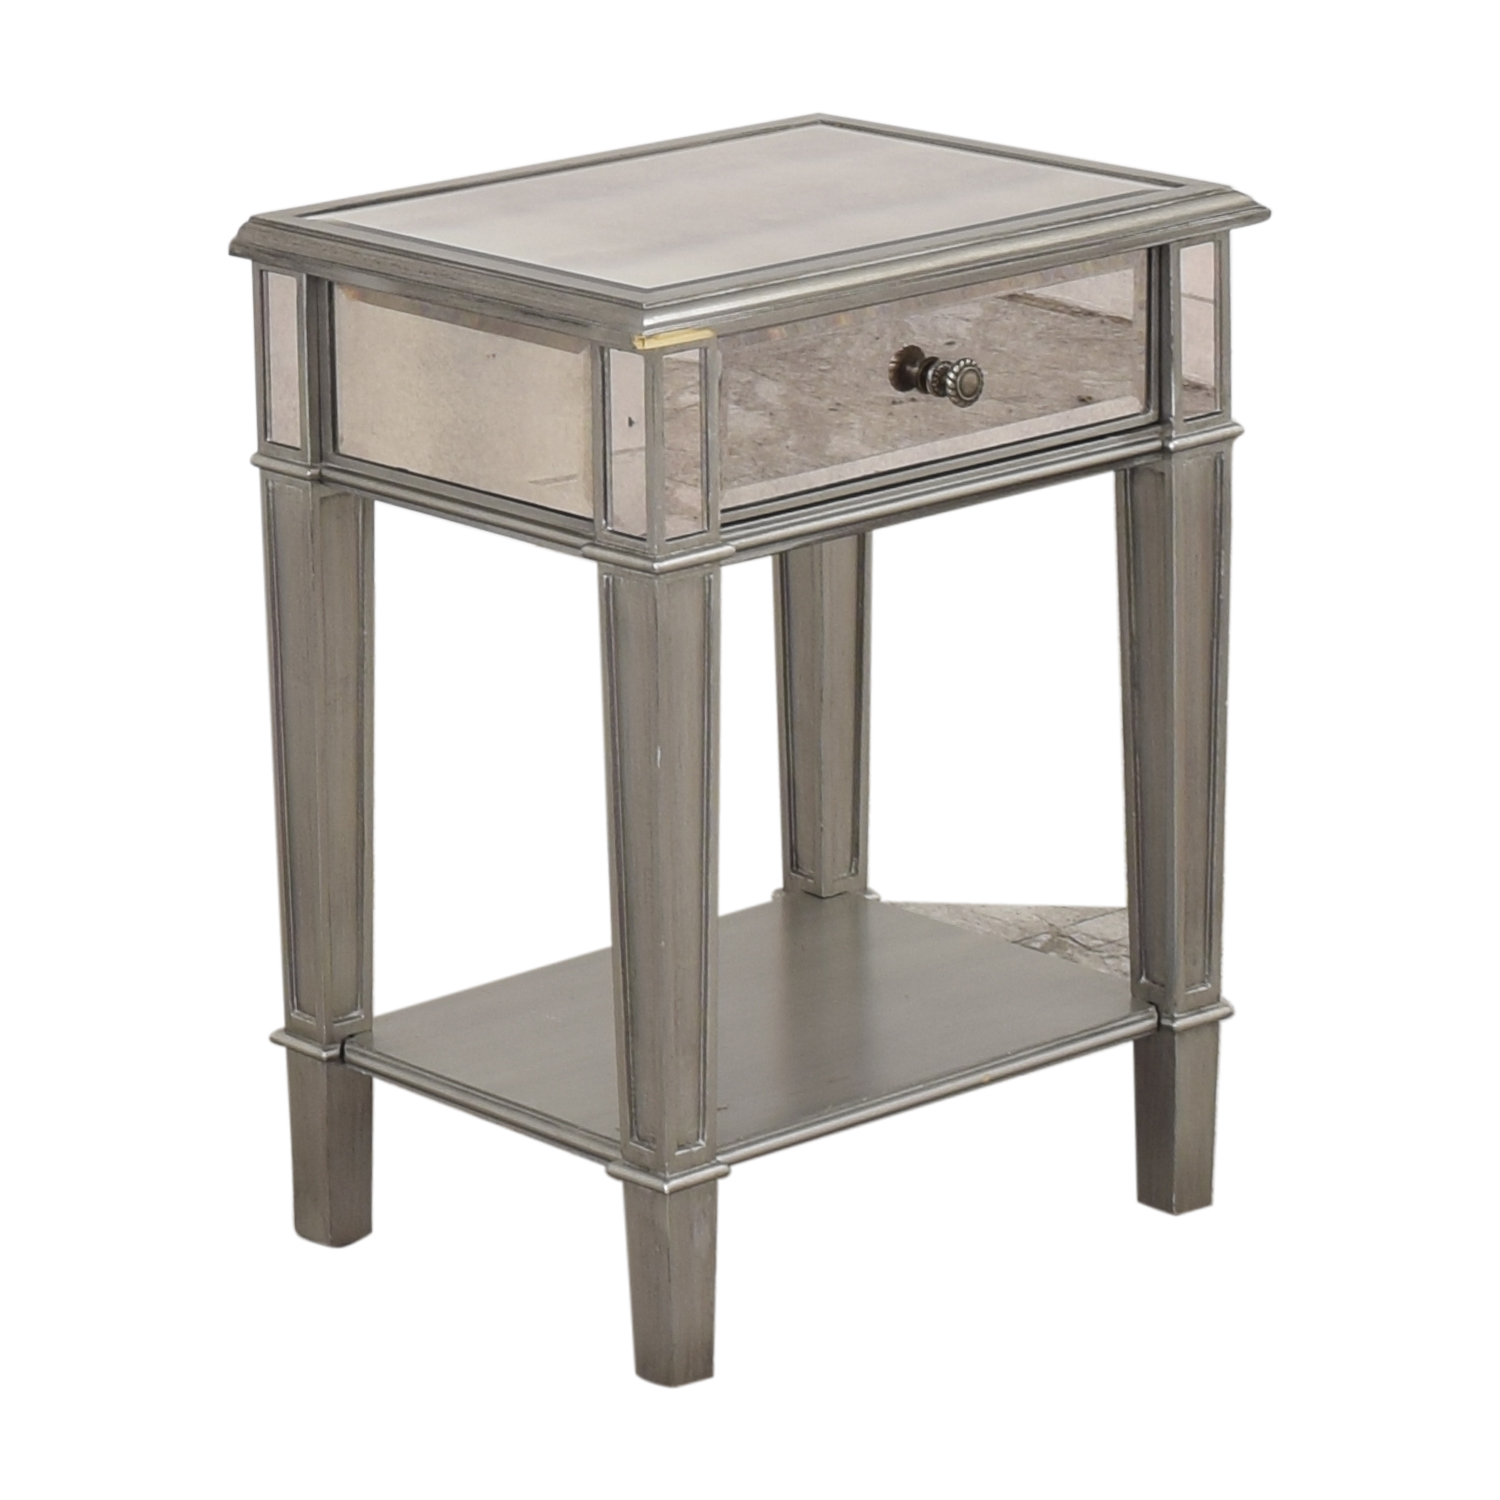 29 Off Pier 1 Pier 1 Mirrored Nightstand Tables